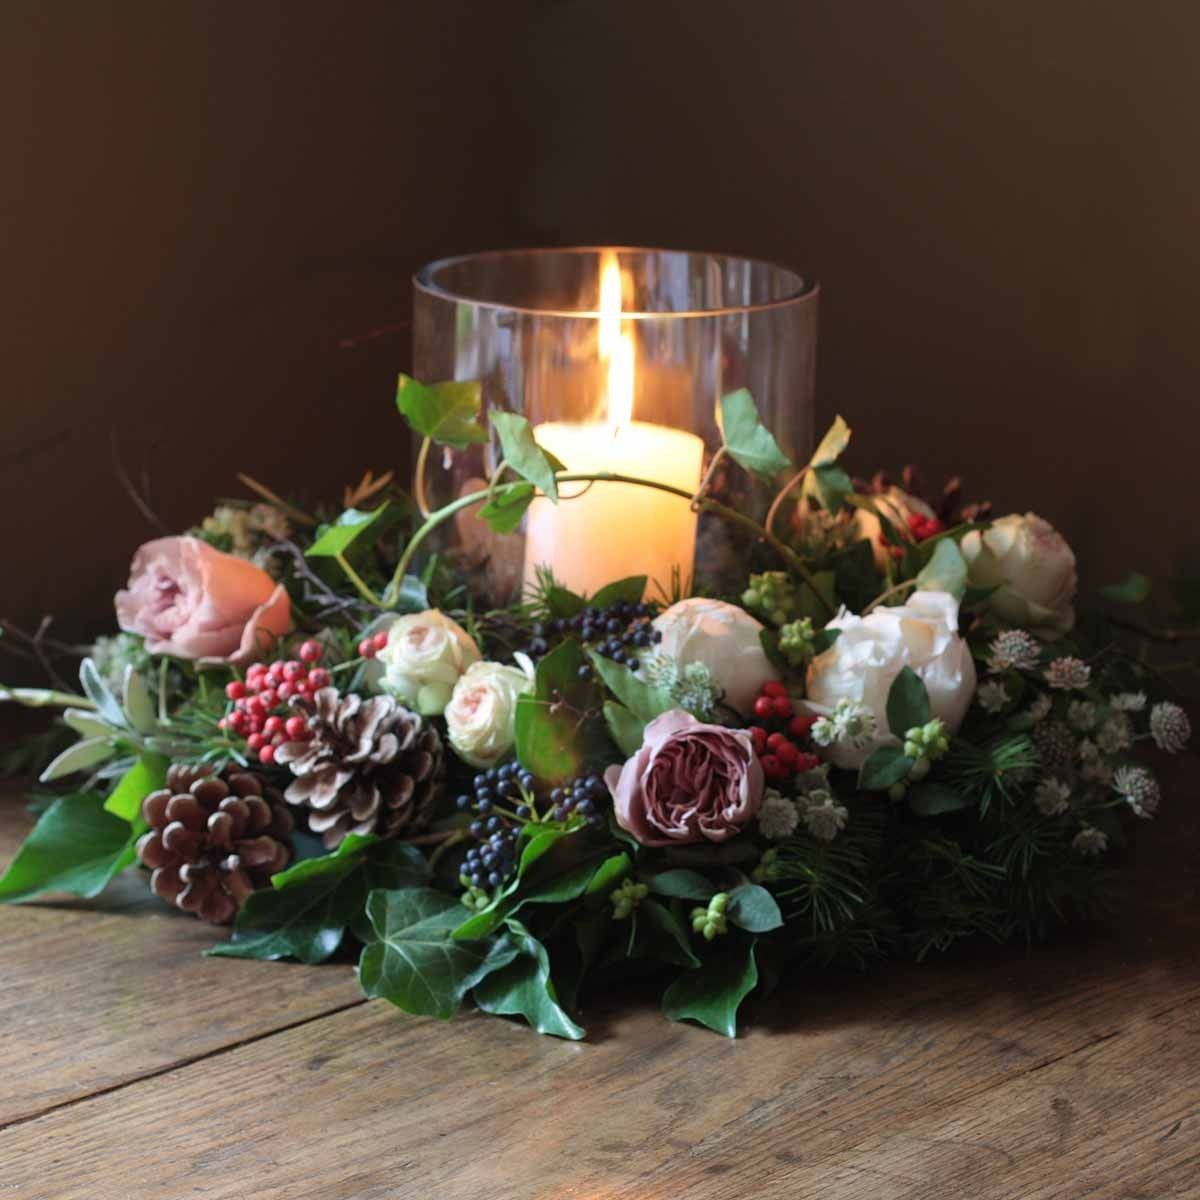 Christmas Creations from The Real Flower Company